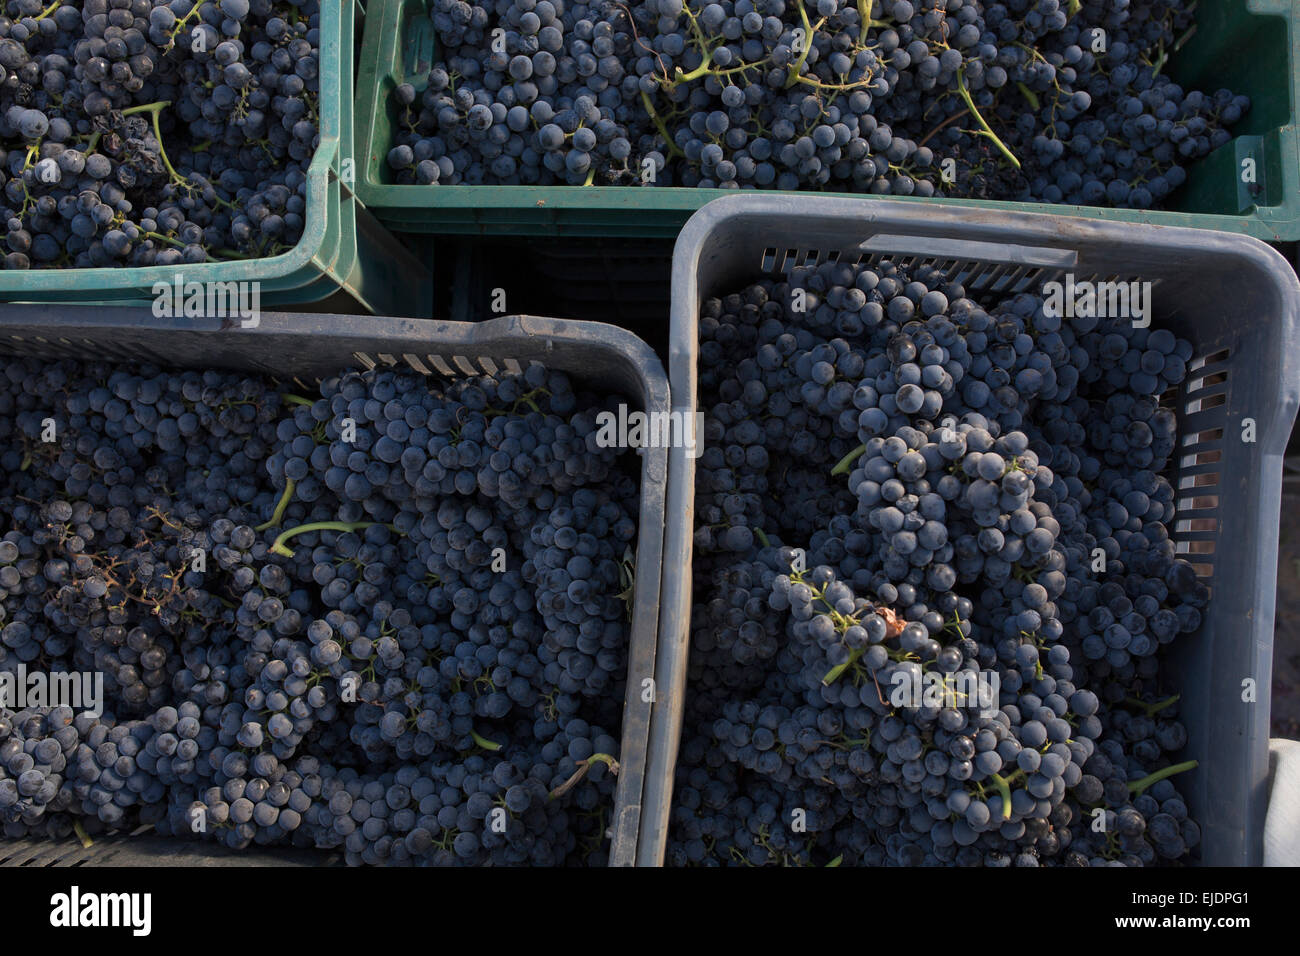 Plastic trays with bunches of black grape arrange side by side. - Stock Image